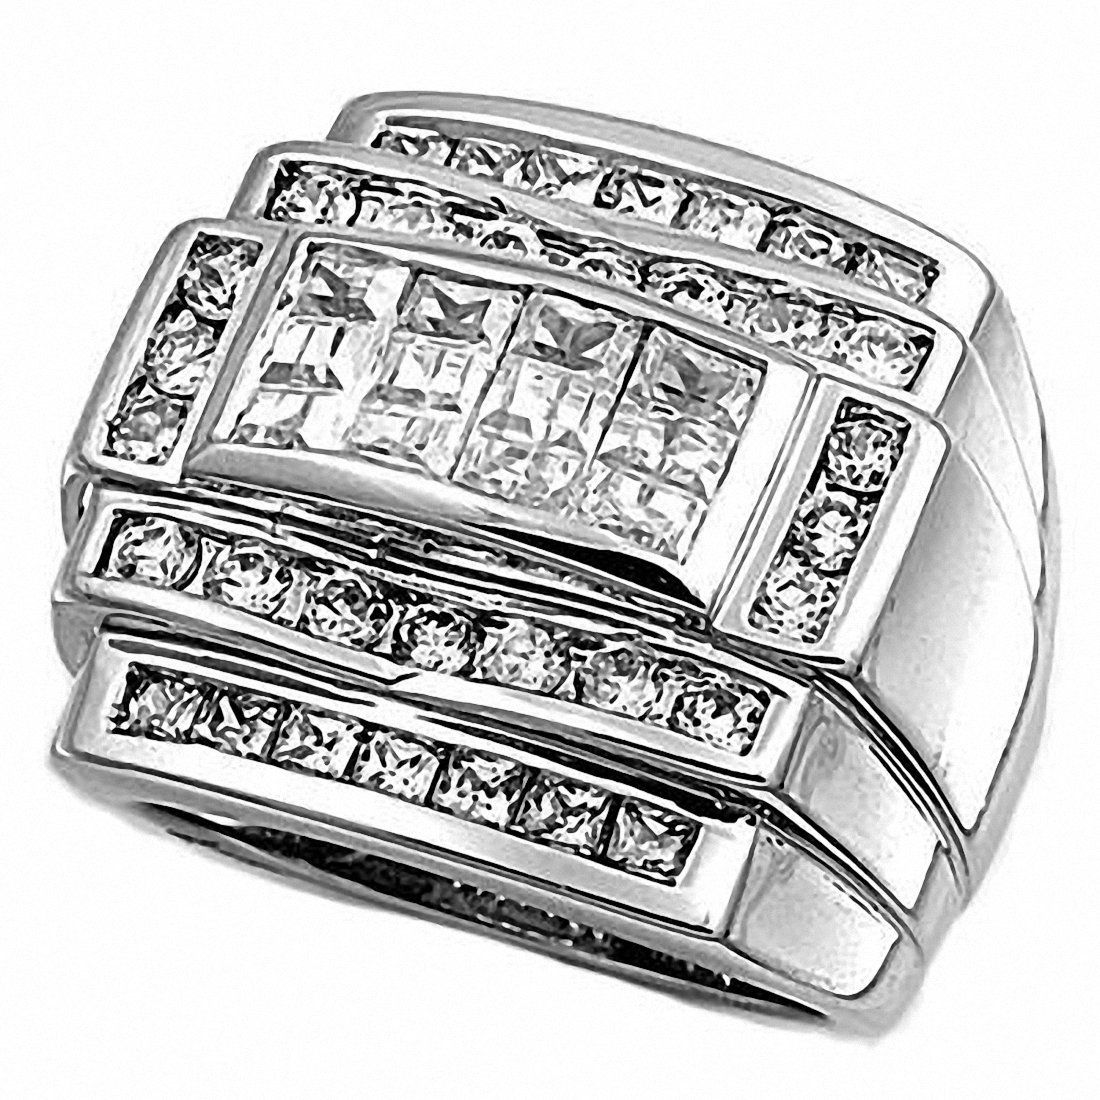 Silver CZ Ring Mens silver rings, Rings for men, Cubic